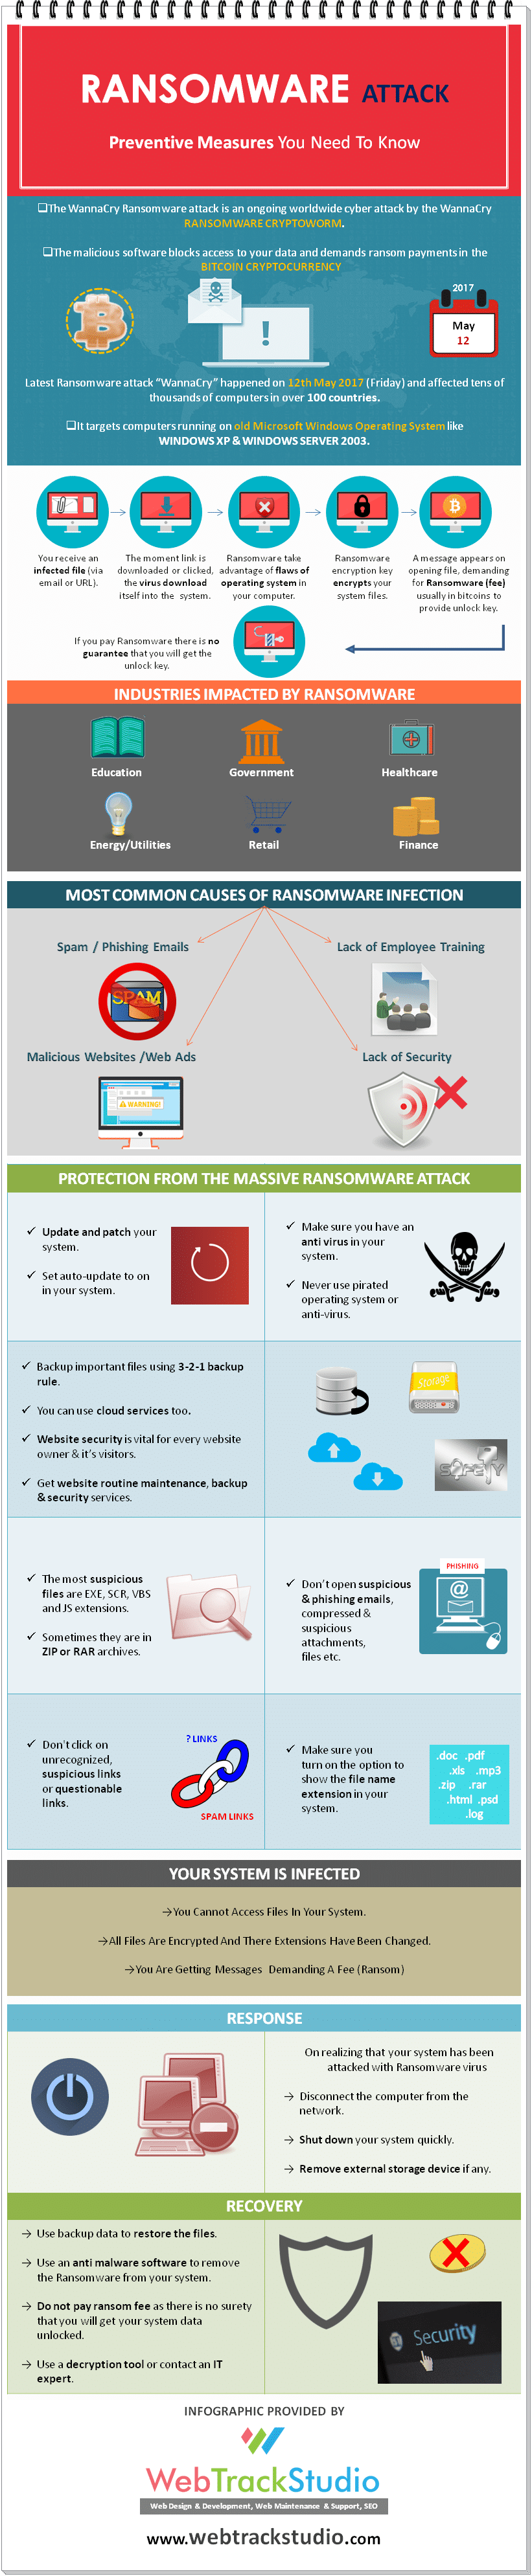 How To Protect Yourself From A Ransomware Attack - Infographic